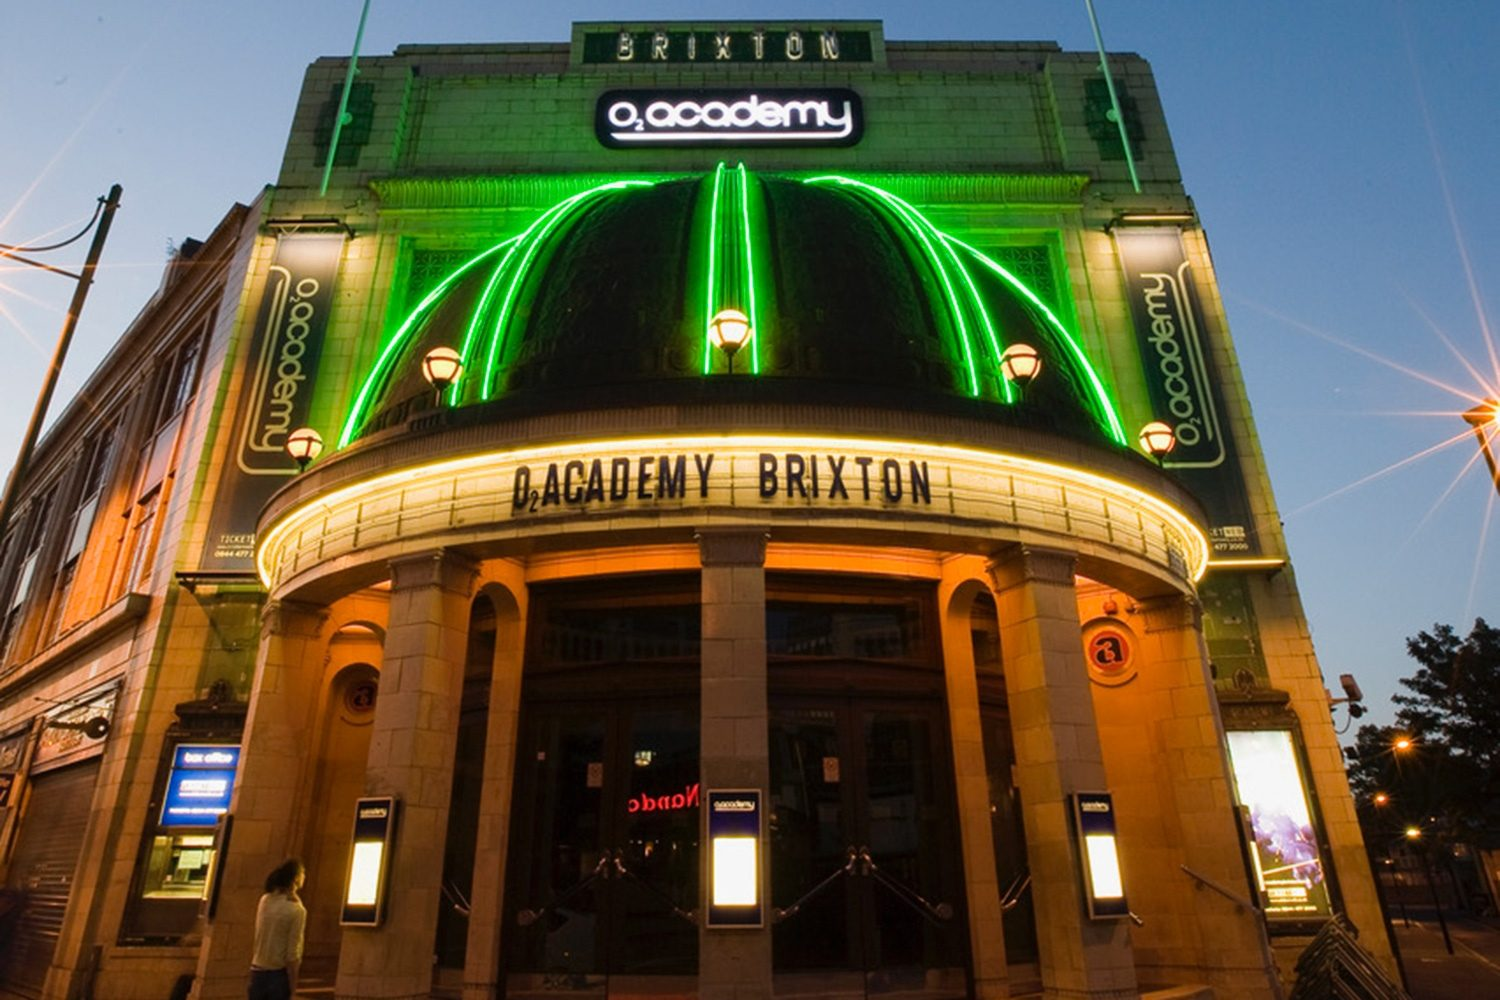 London's O2 Academy Brixton is going to start broadcasting 360° virtual reality gigs